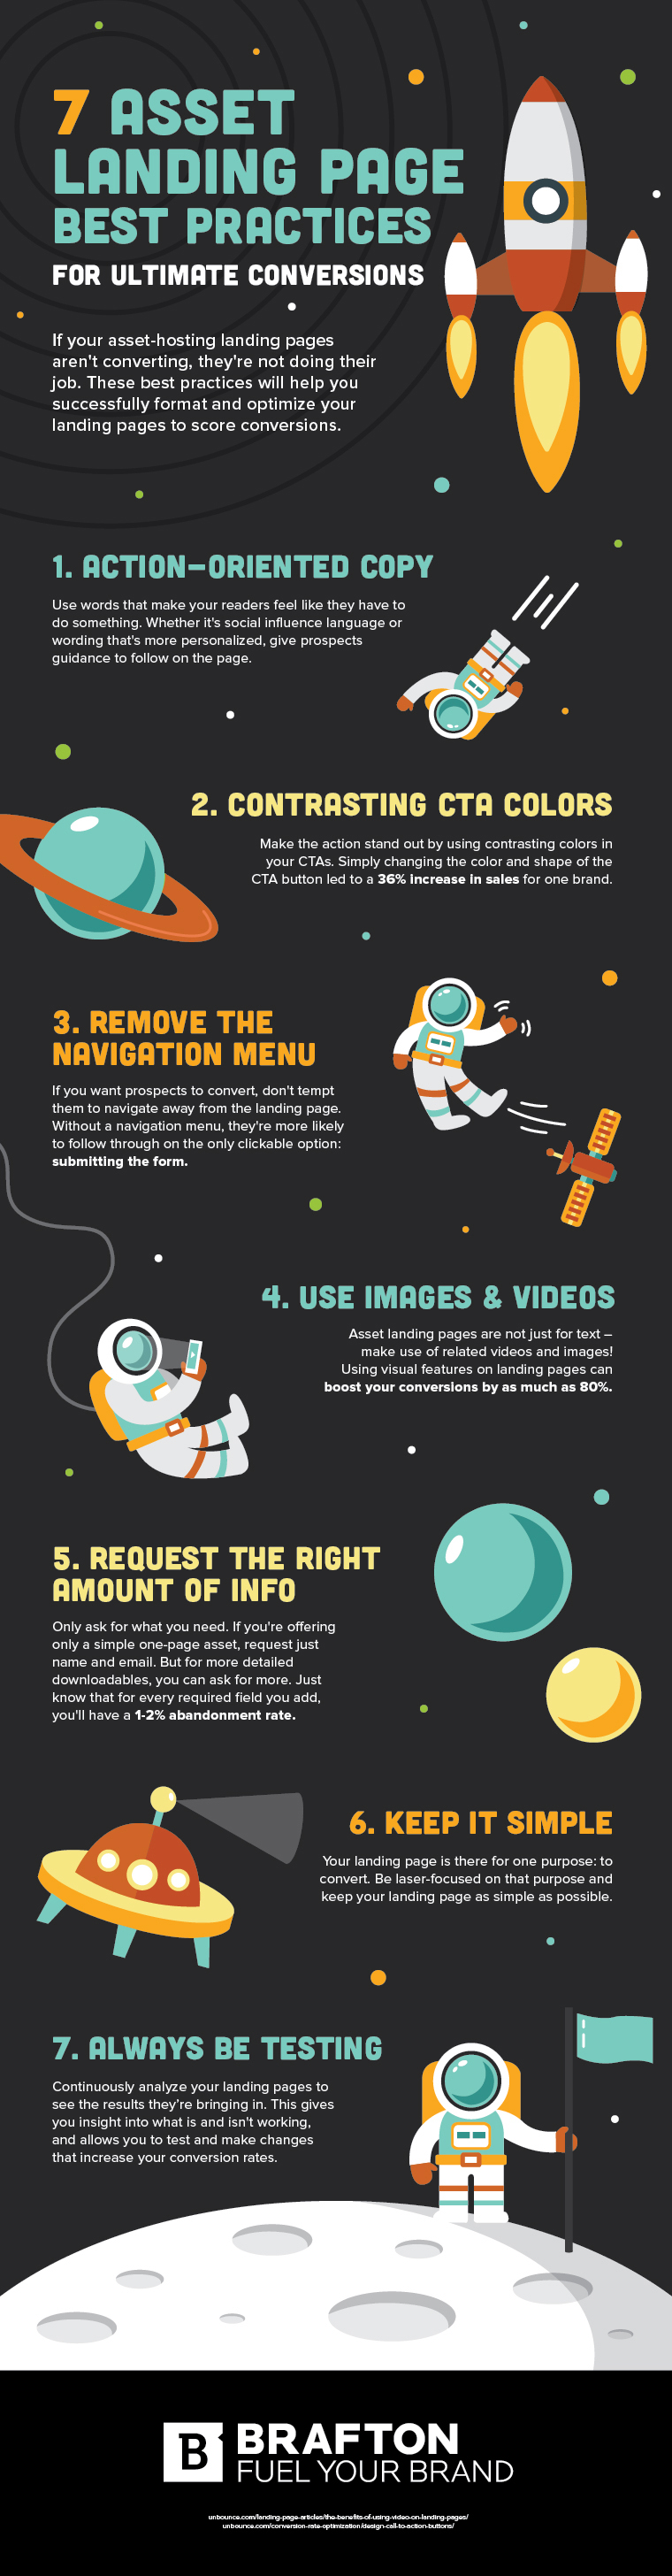 Infographic outlines tips to improve your landing page performance